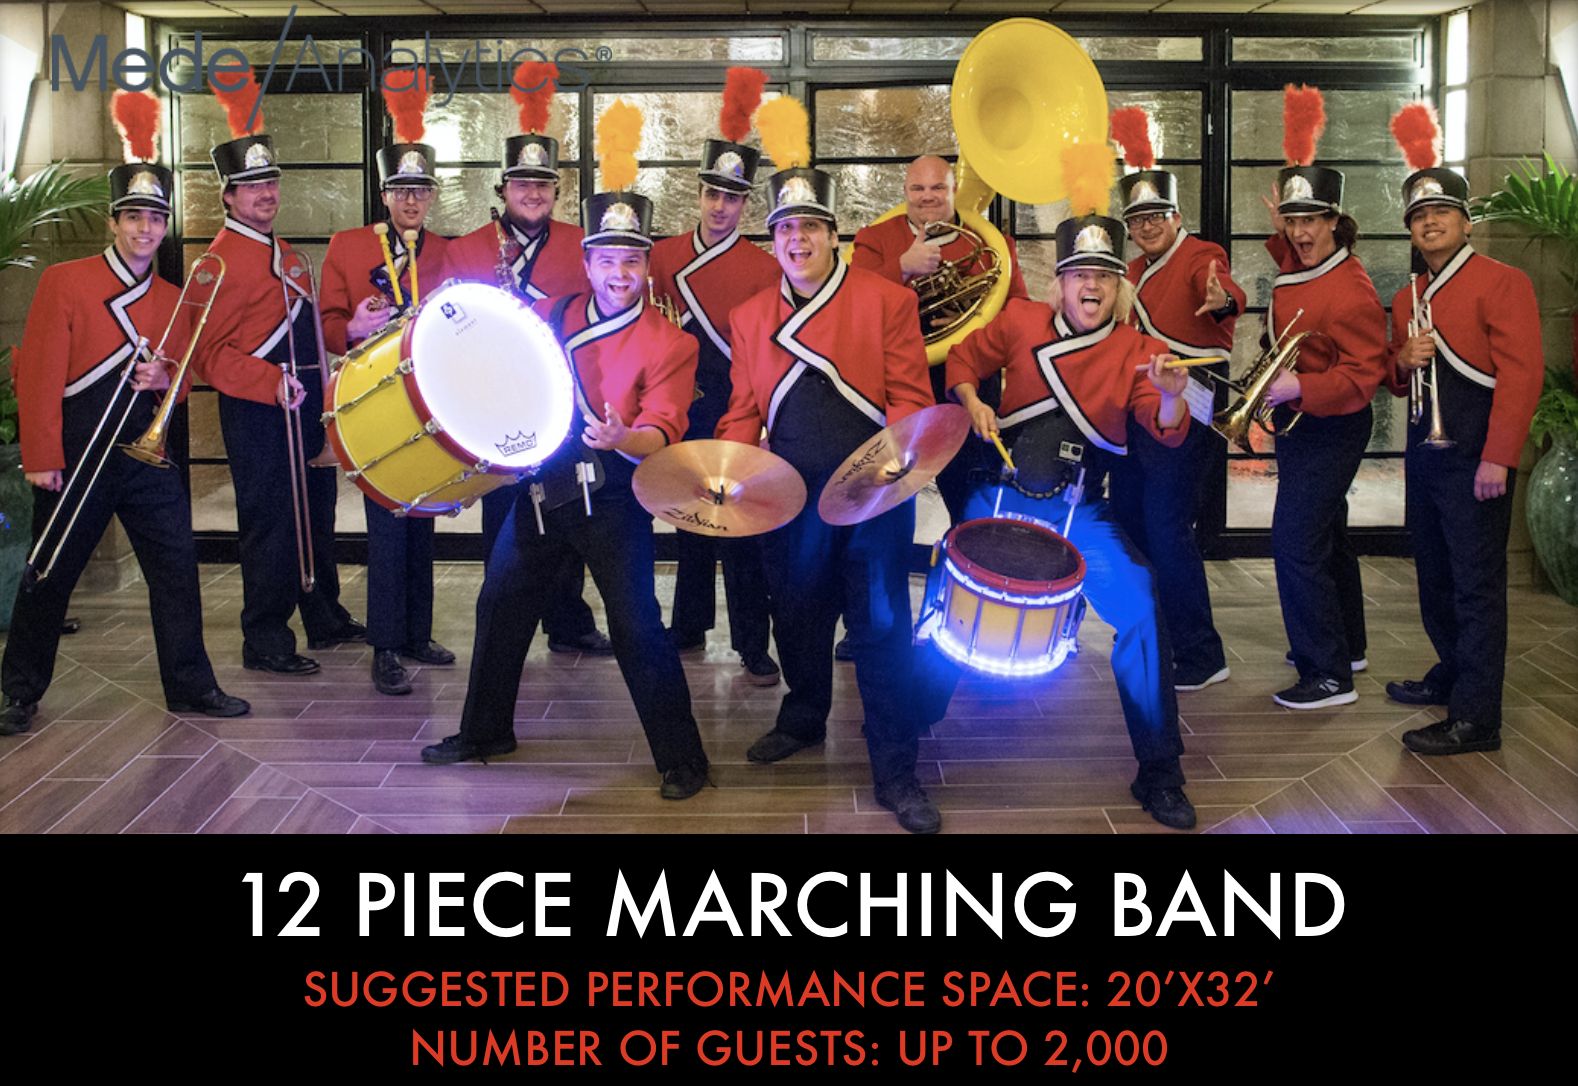 12 piece Marching Band